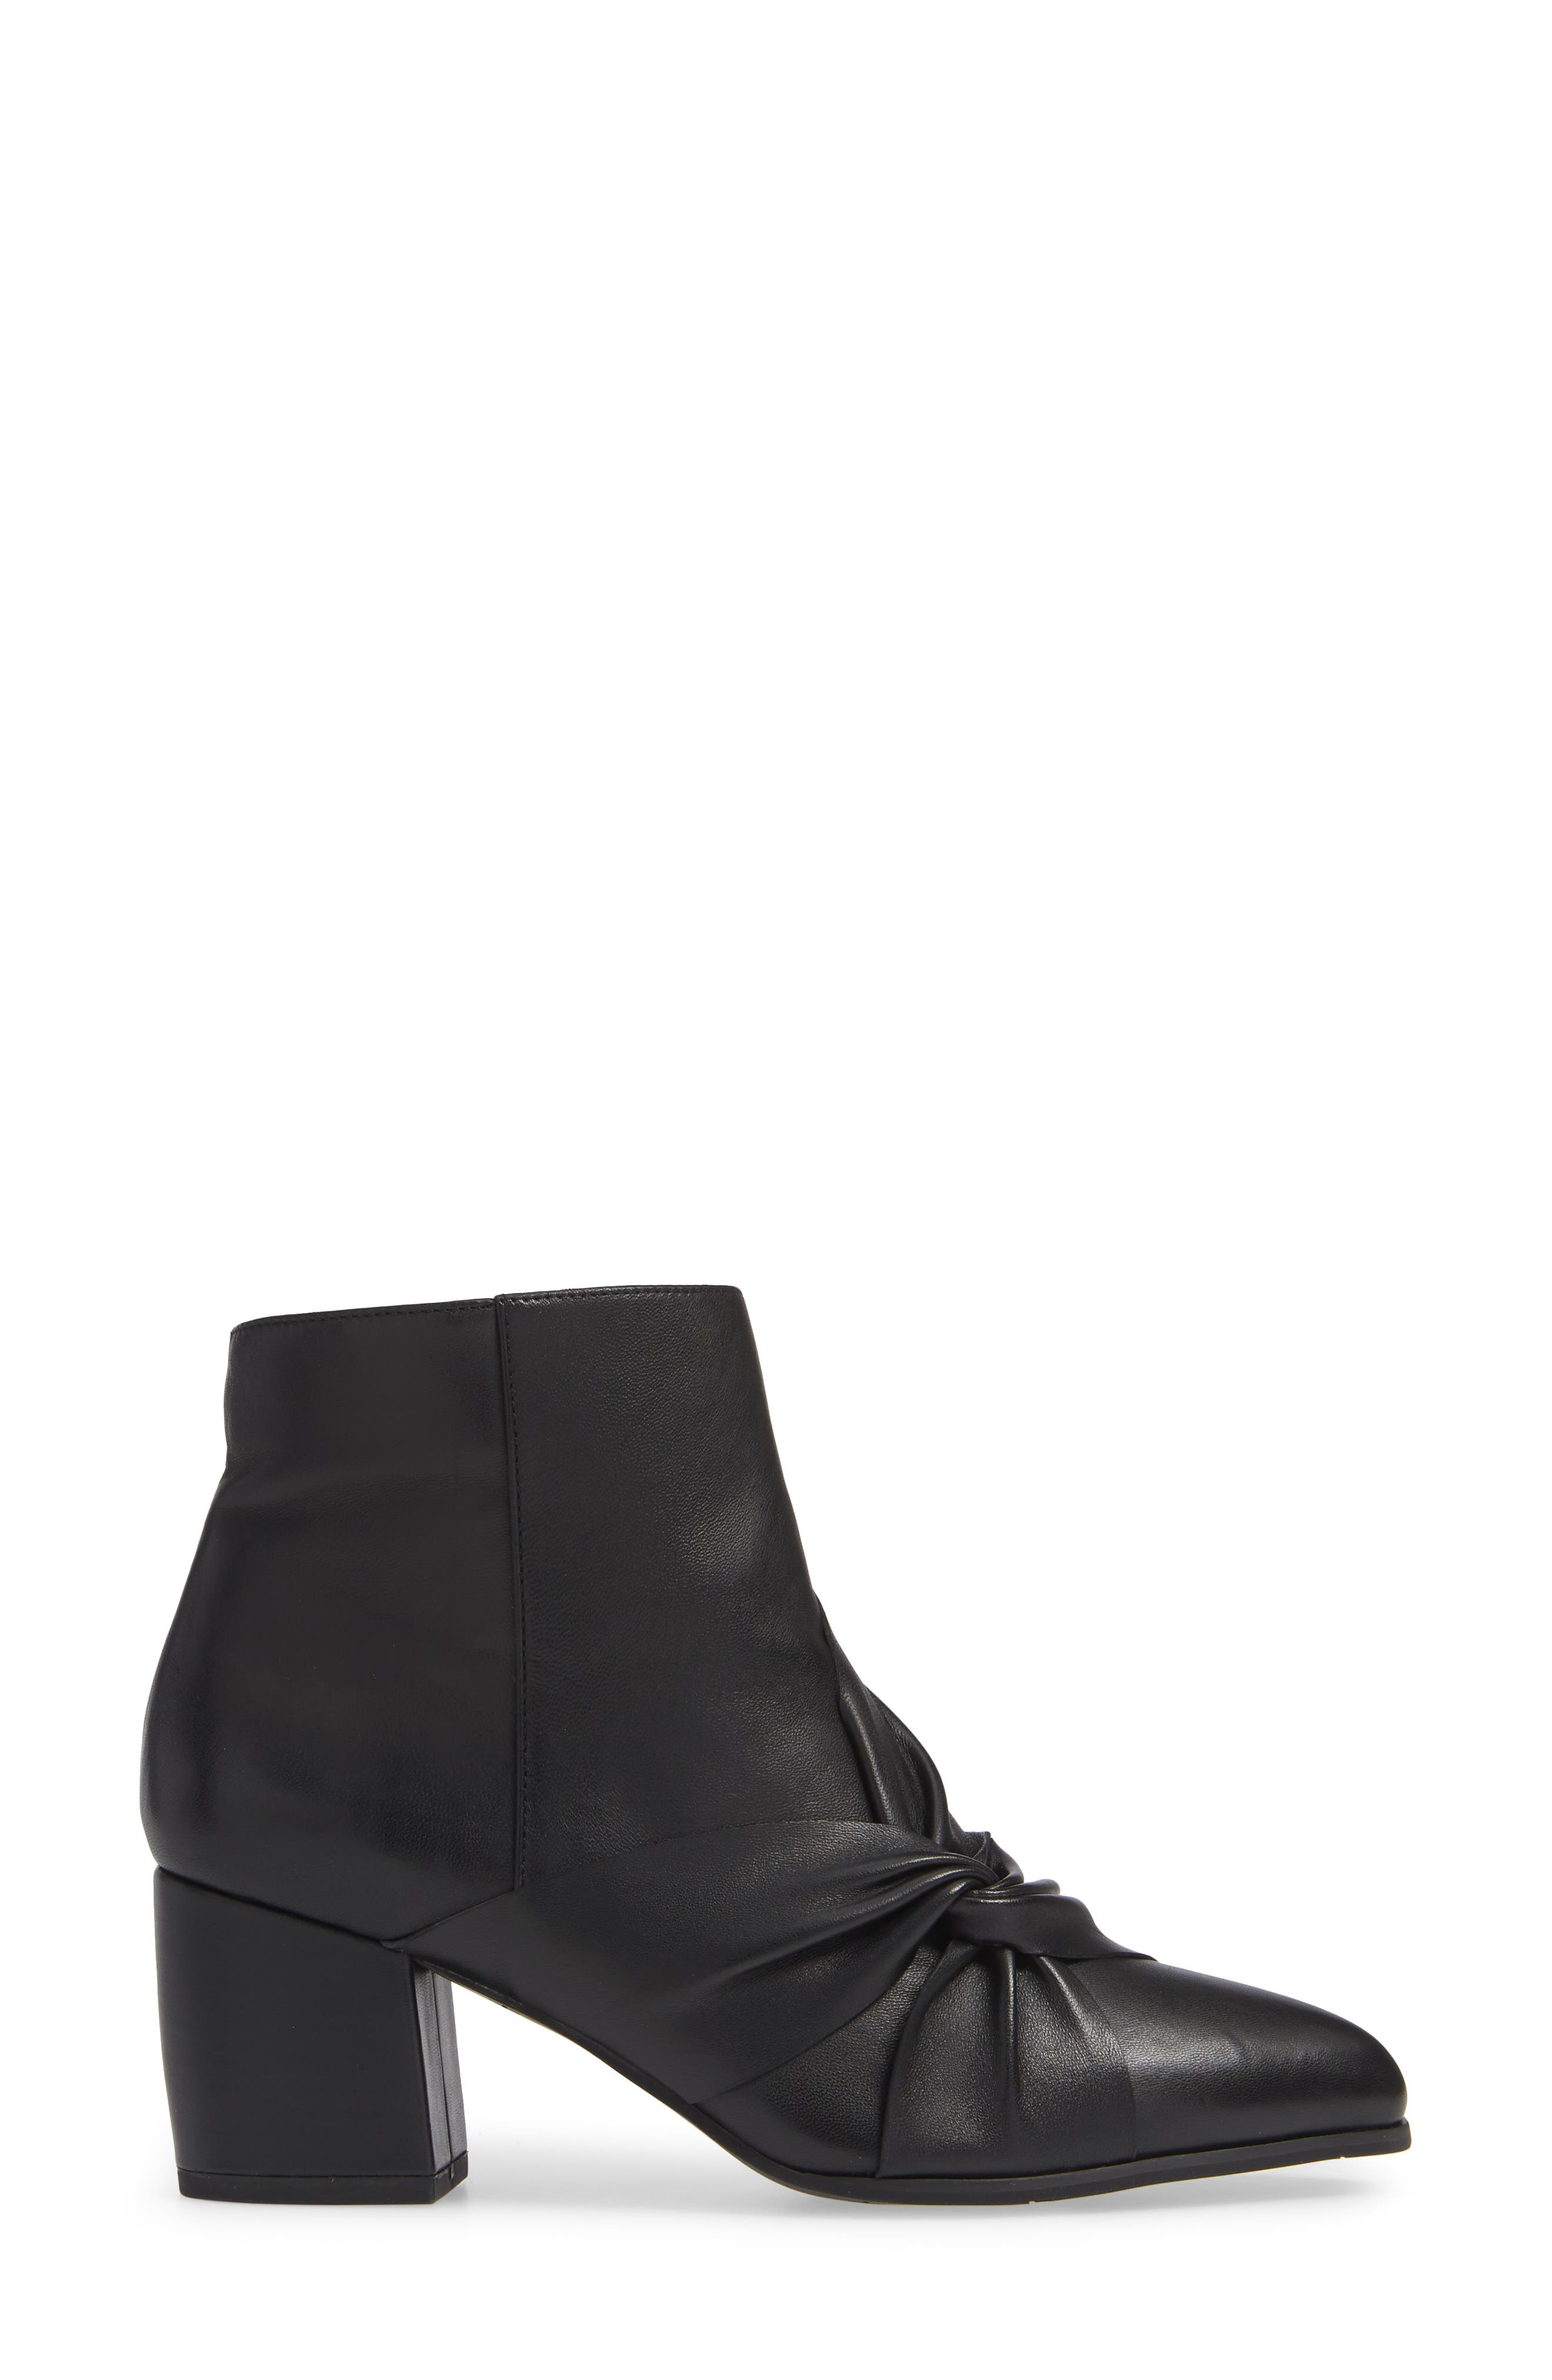 NIC+ZOE, Amorie II Bootie, Alternate thumbnail 3, color, BLACK LEATHER